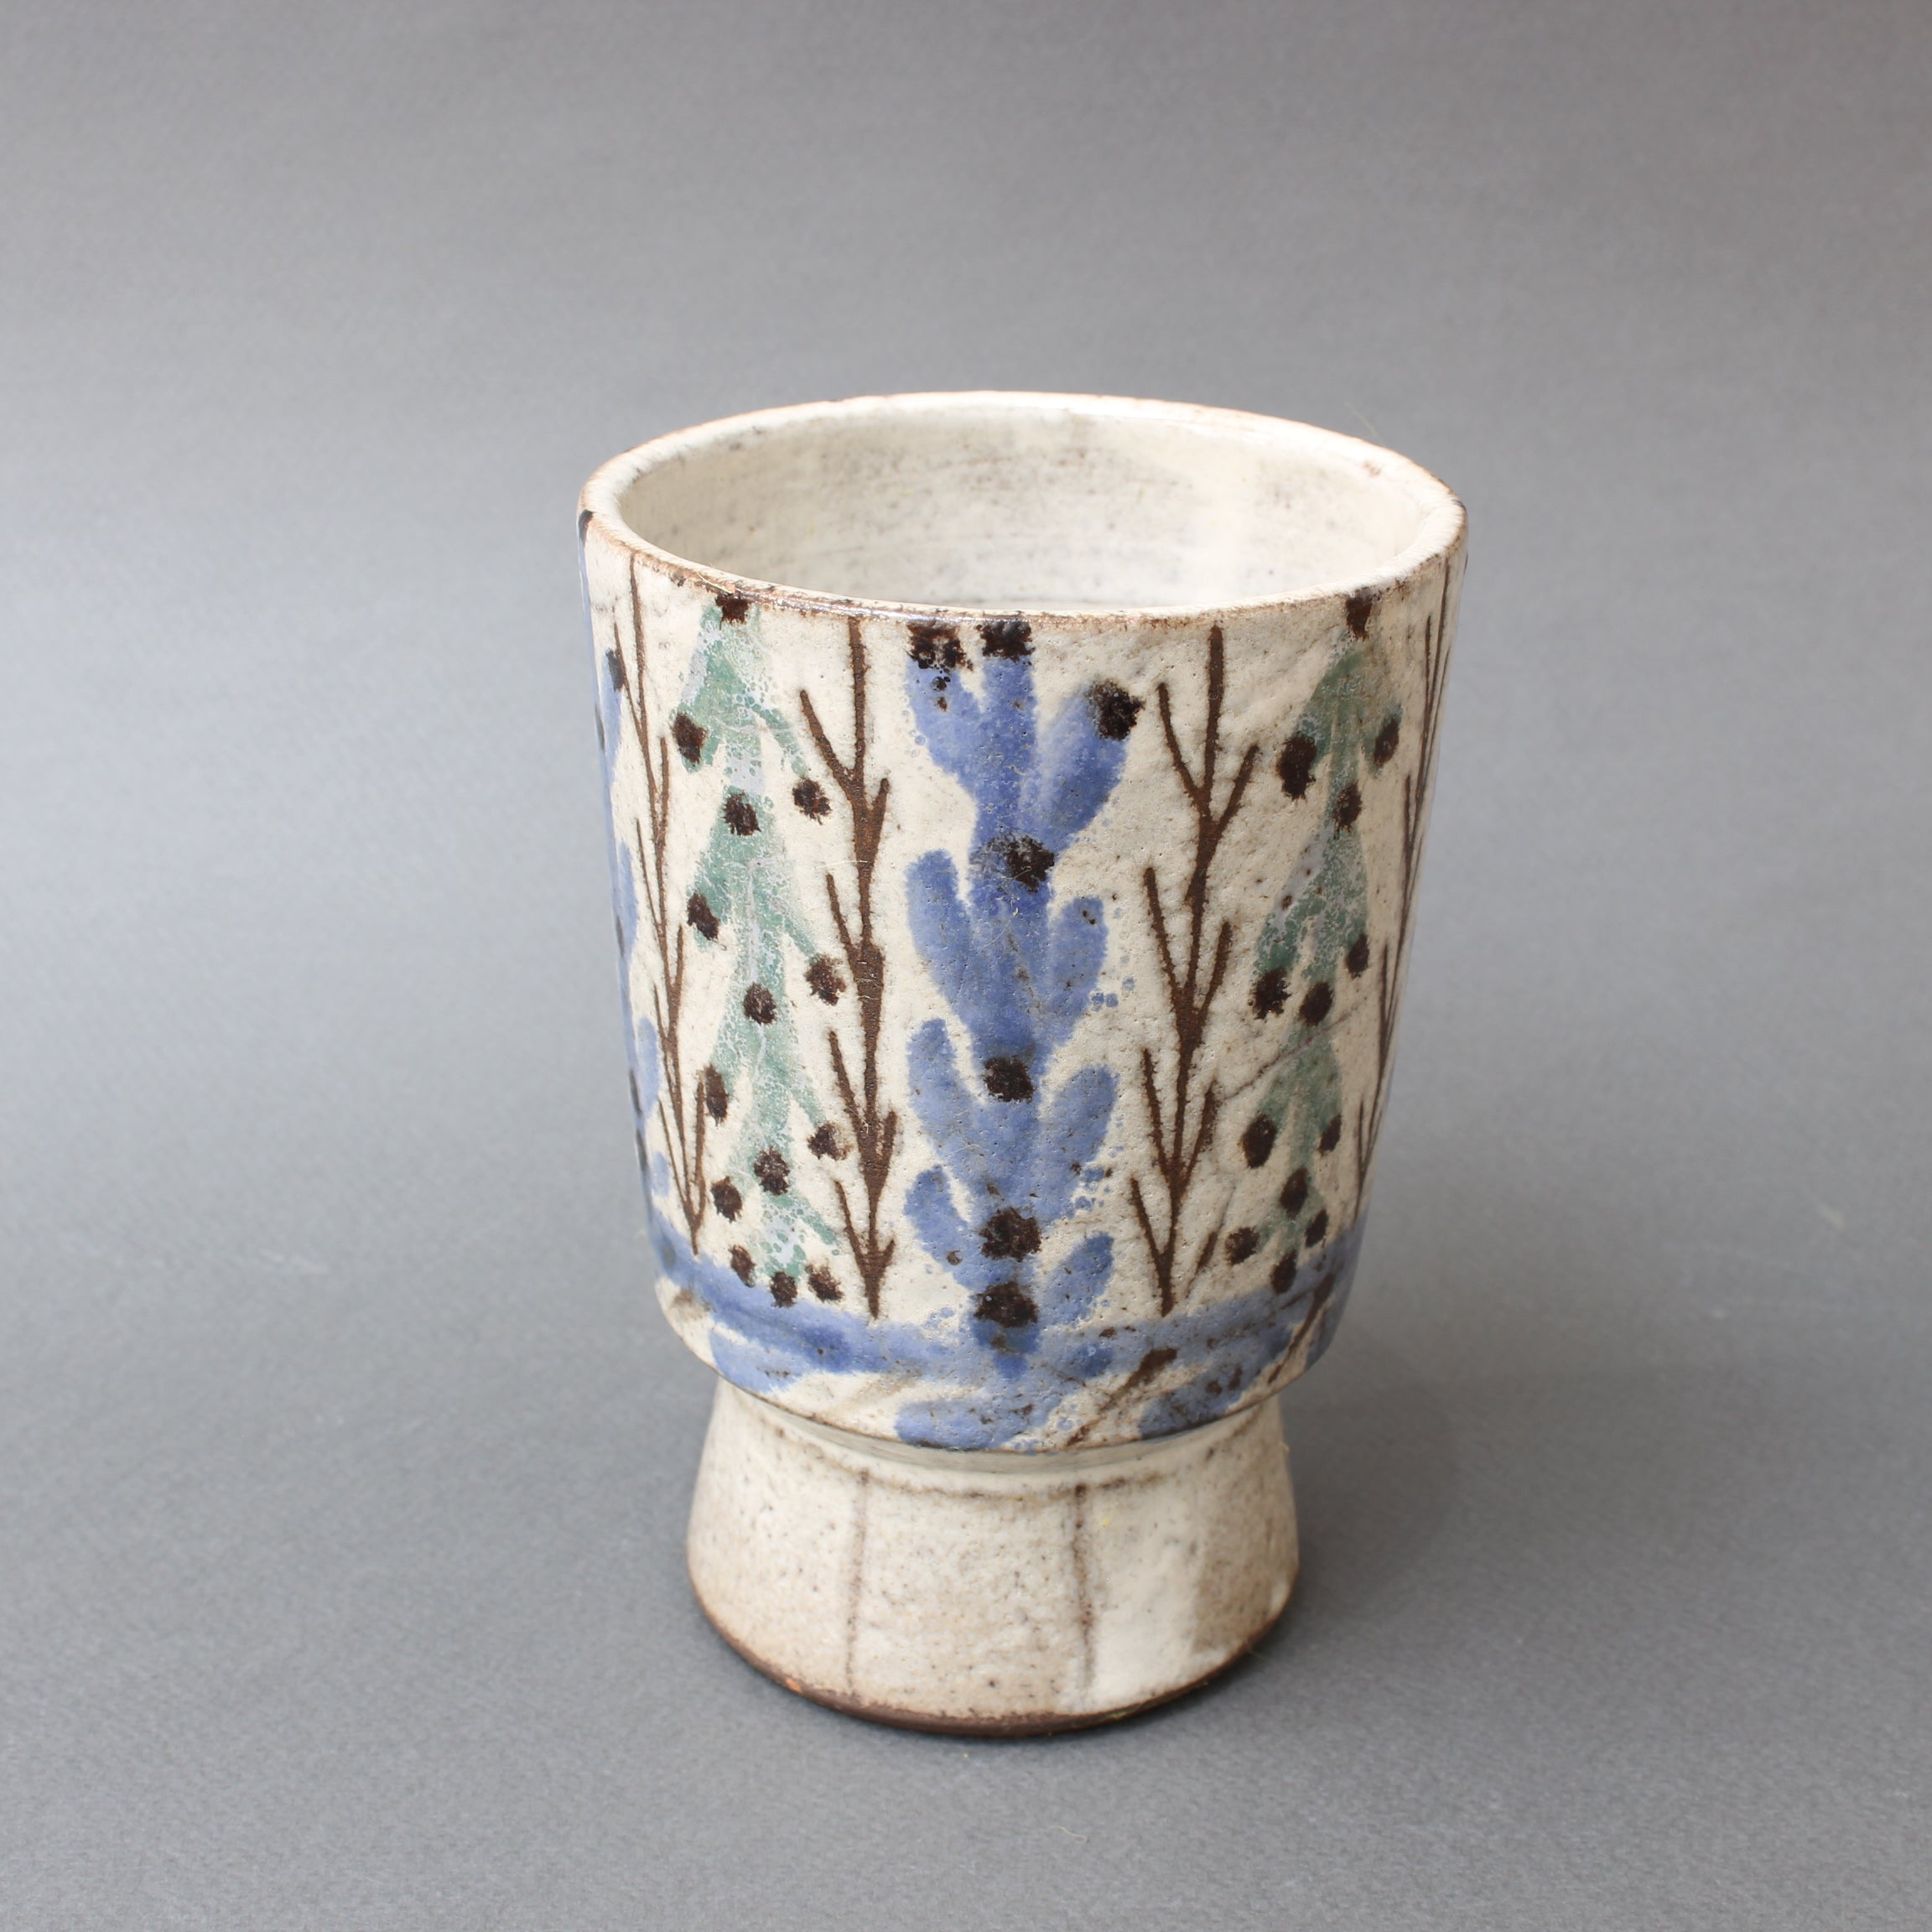 Vintage French Ceramic Vase by Gustave Reynaud, Le Mûrier (circa 1950s)